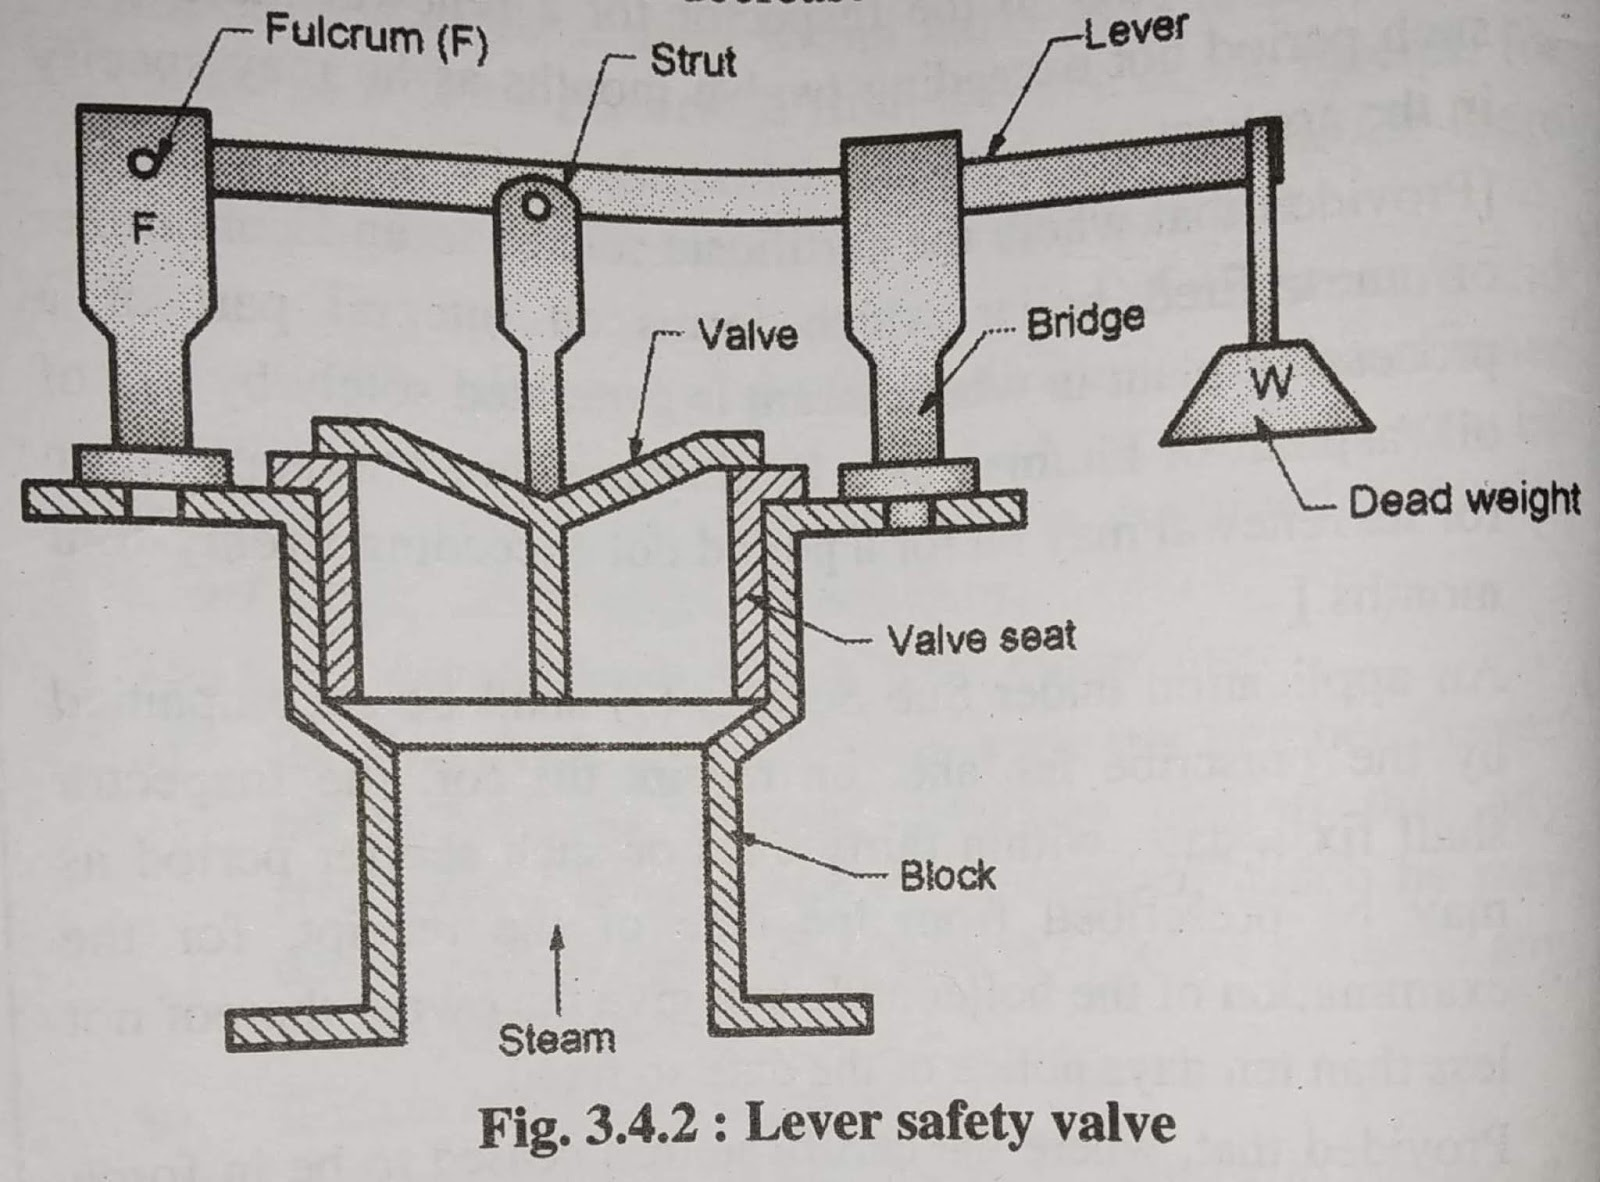 hight resolution of lever safety valve assembly drawing